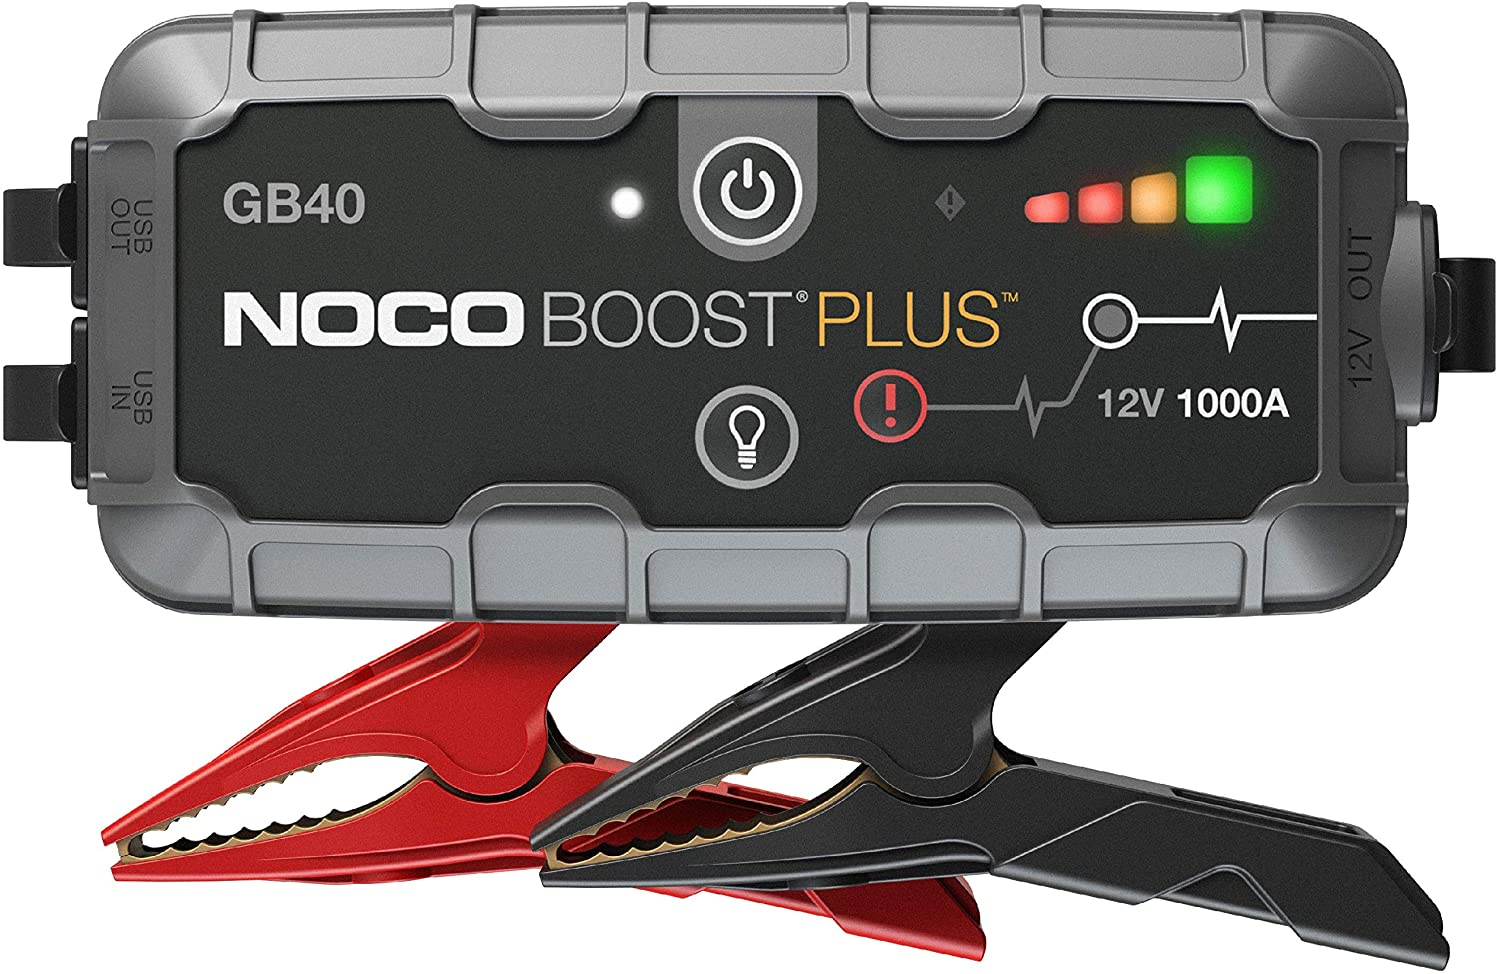 NOCO Boost Plus GB40 1000 Amp 12-Volt Car Battery Jump Starter Box